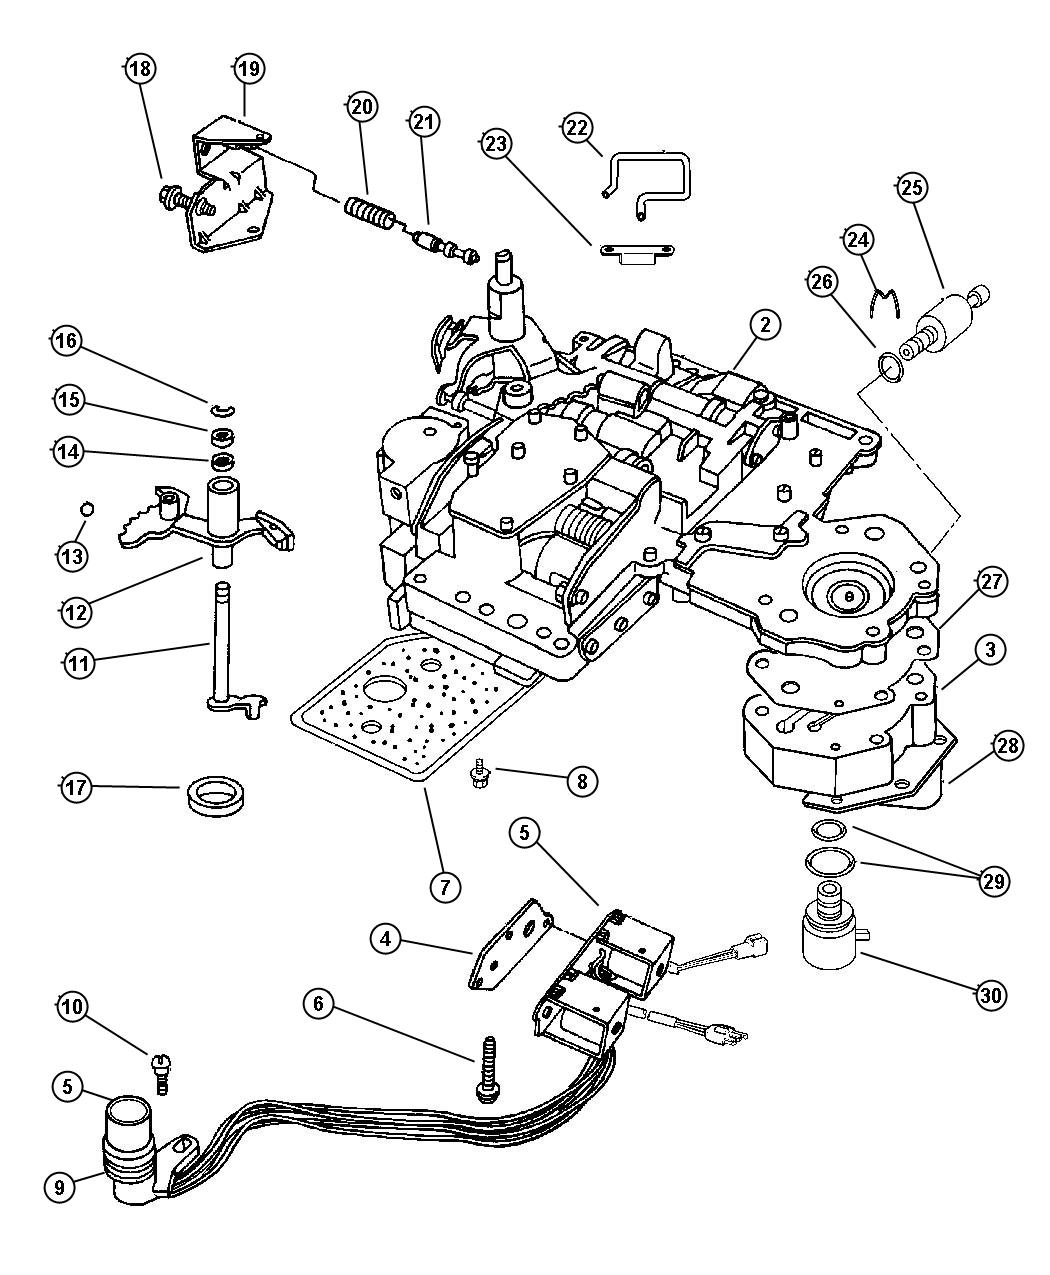 Wiring Diagram For 1997 Dodge Neon – Ireleast